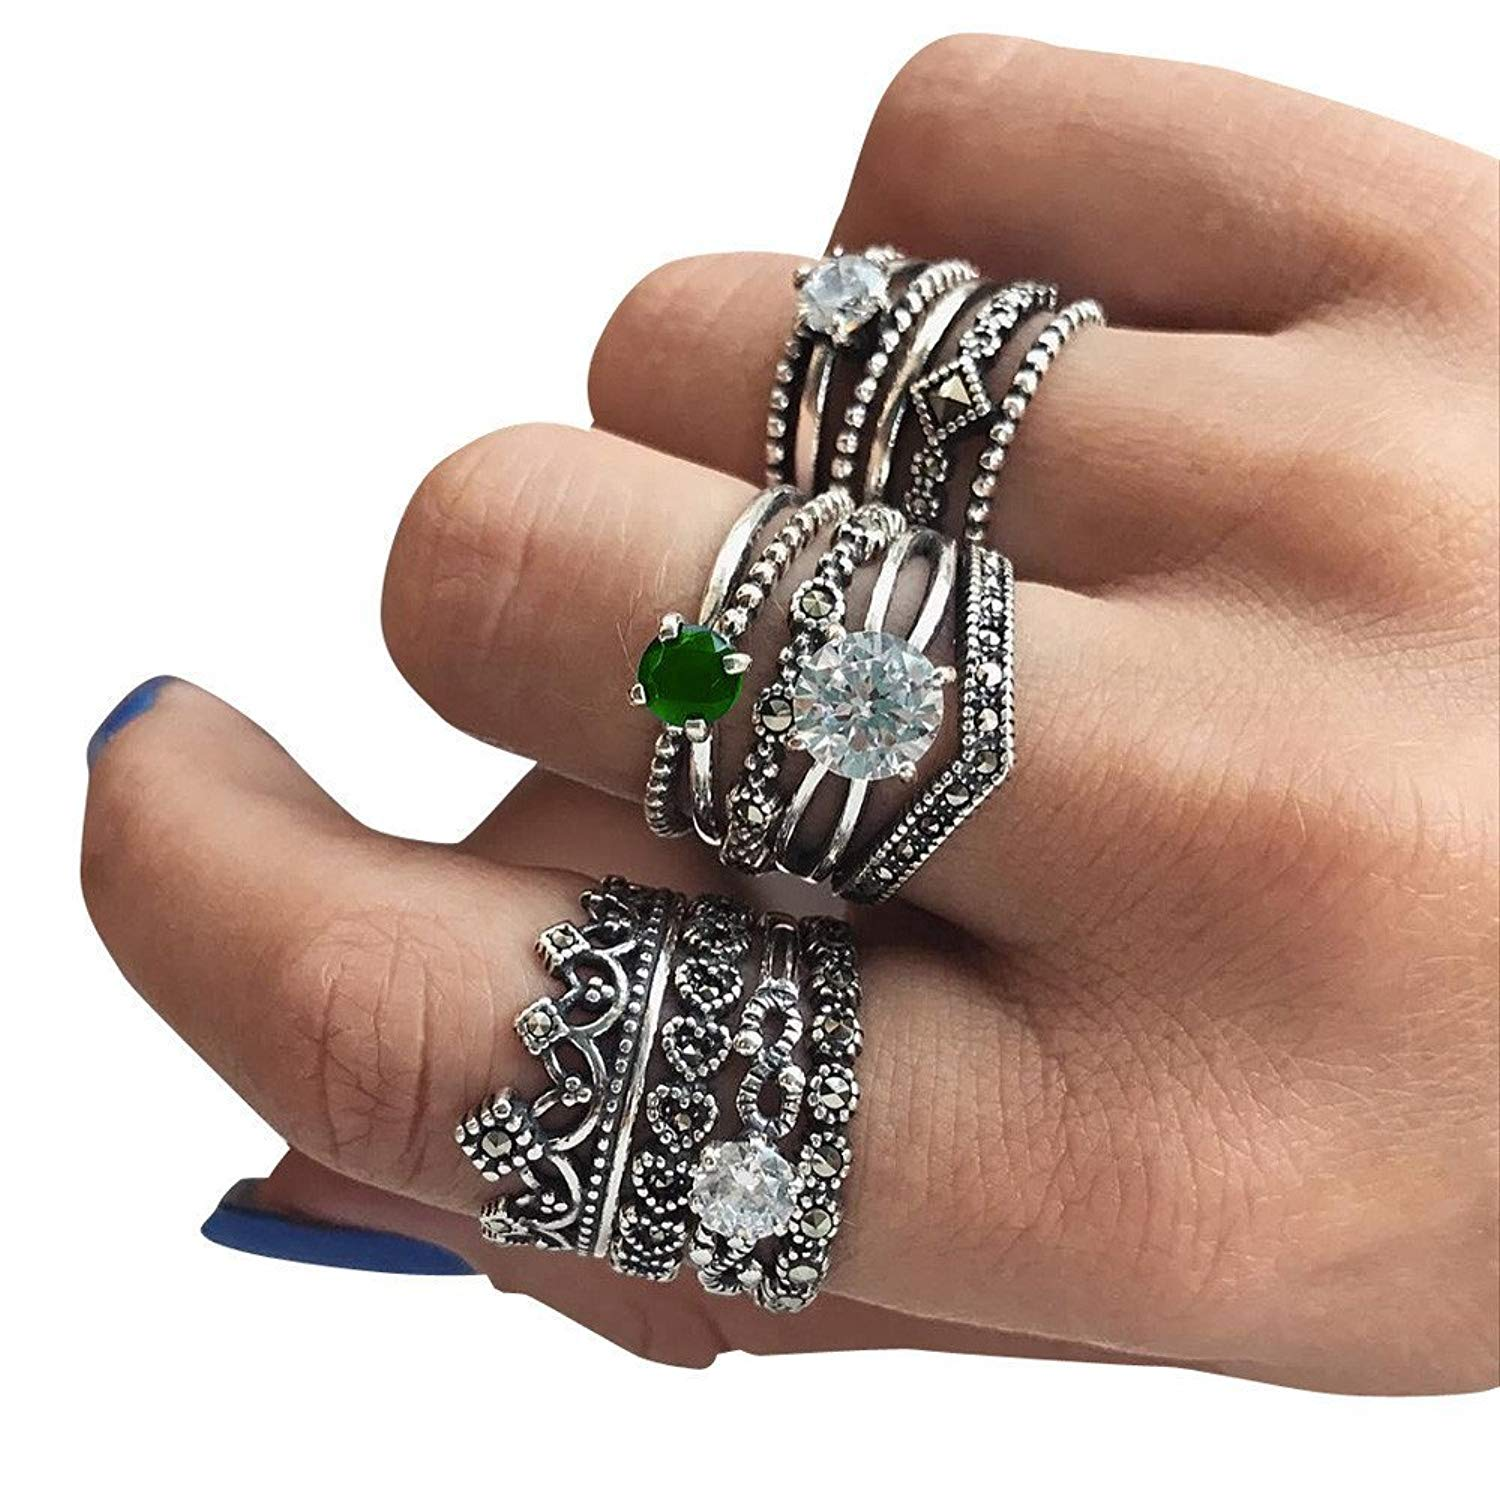 1db0e6dd5 Get Quotations · 12PC Women Bohemian Vintage Silver Crystal Stack Rings  Above Knuckle Rings Set